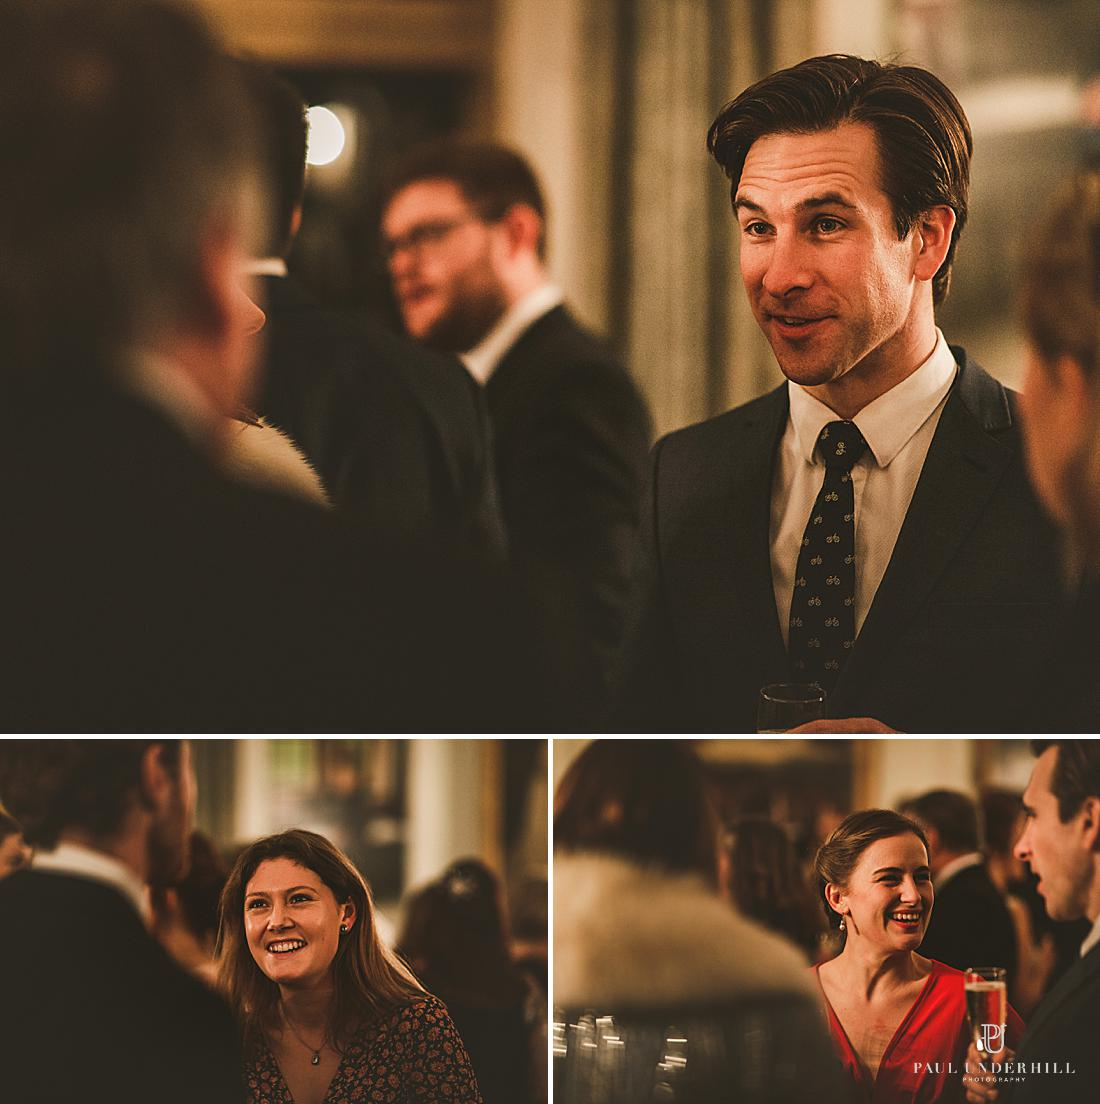 Creative low light wedding documentary photography